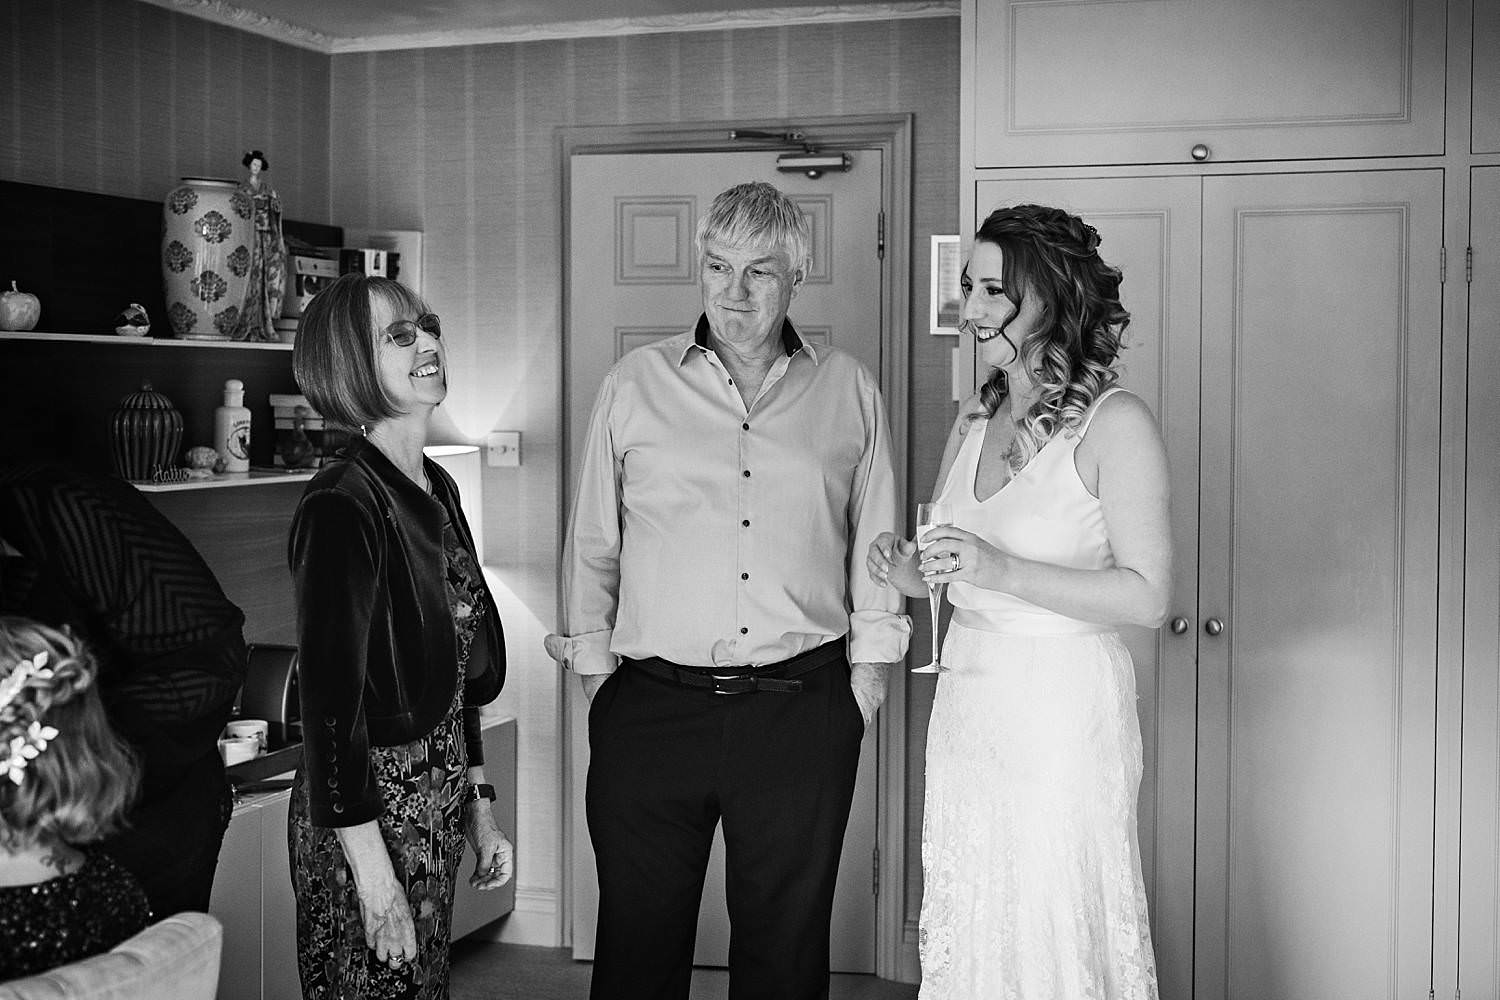 Bride's mum and dad seeing her in her wedding dress